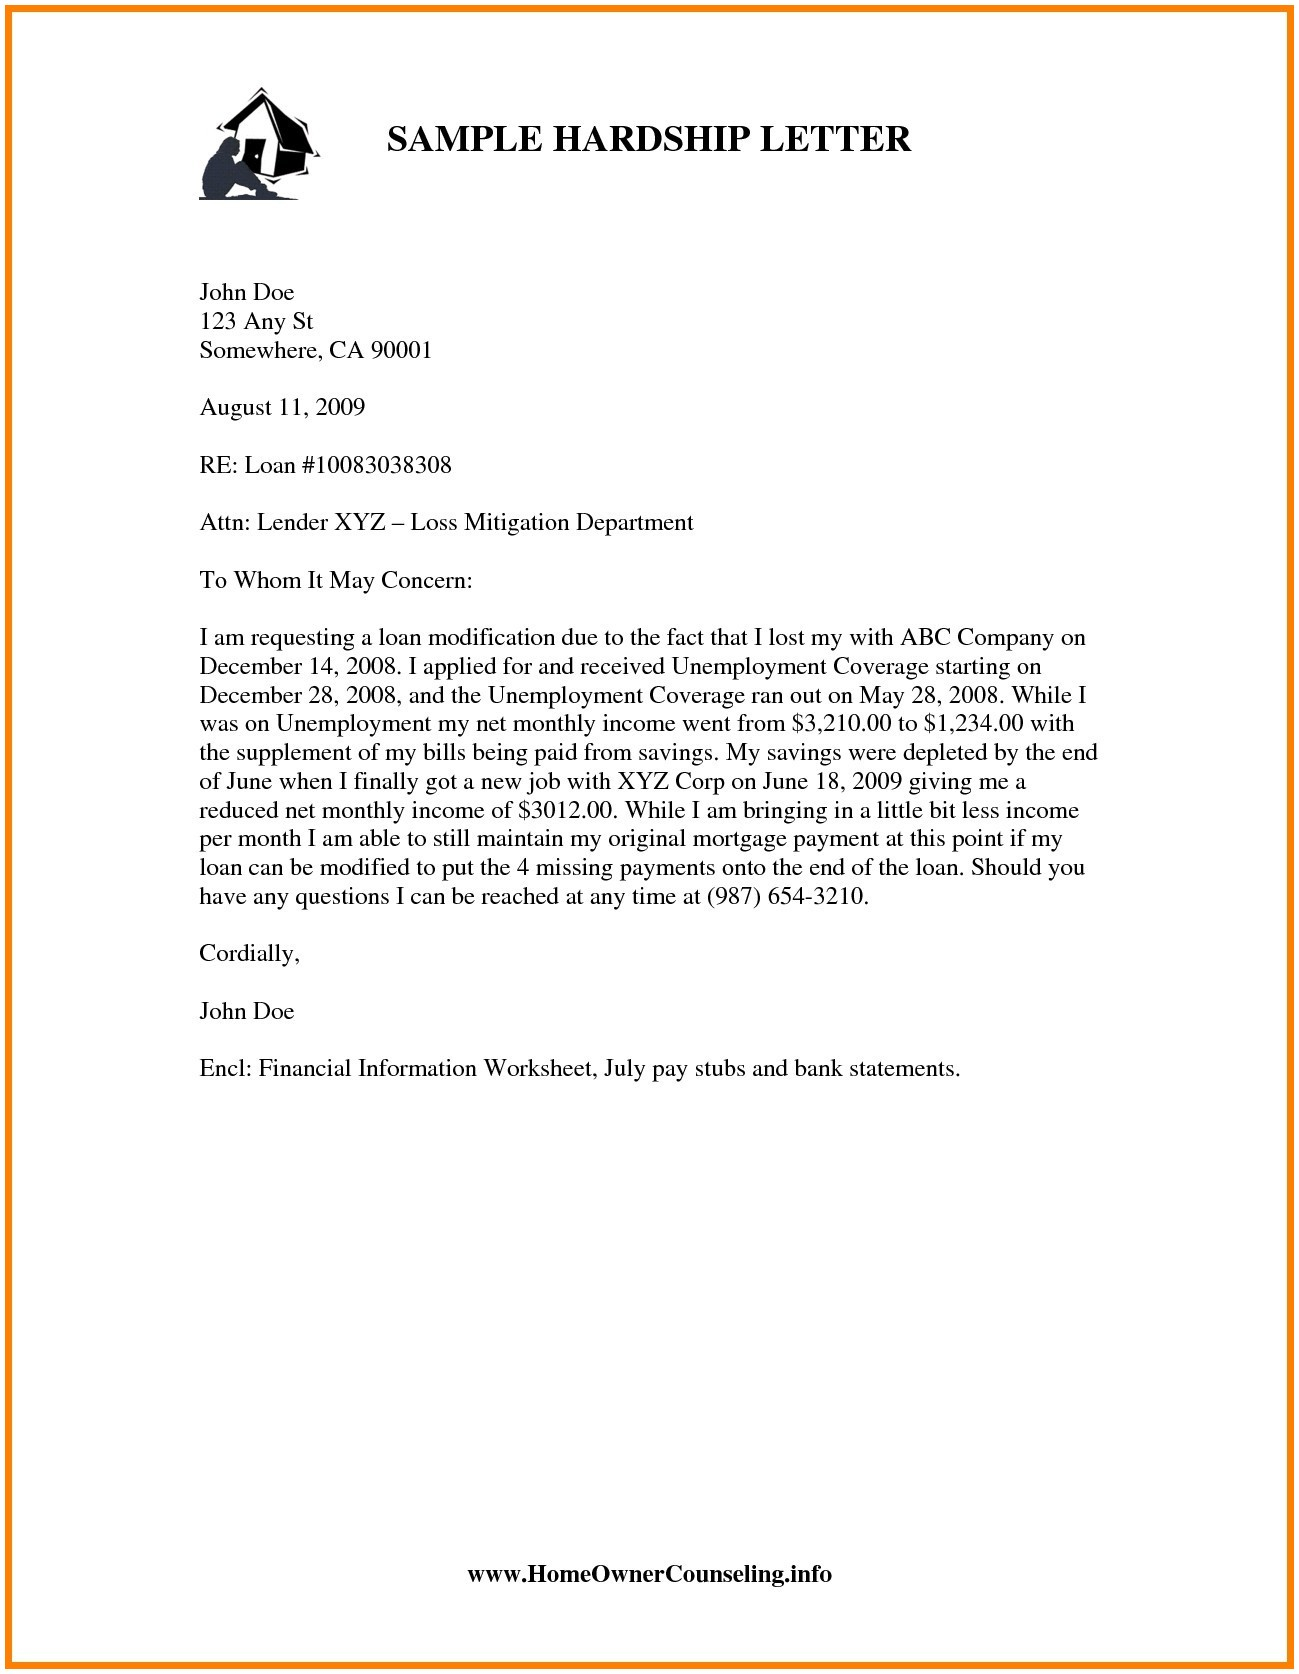 Mortgage Hardship Letter Template - Mortgage Hardship Letter